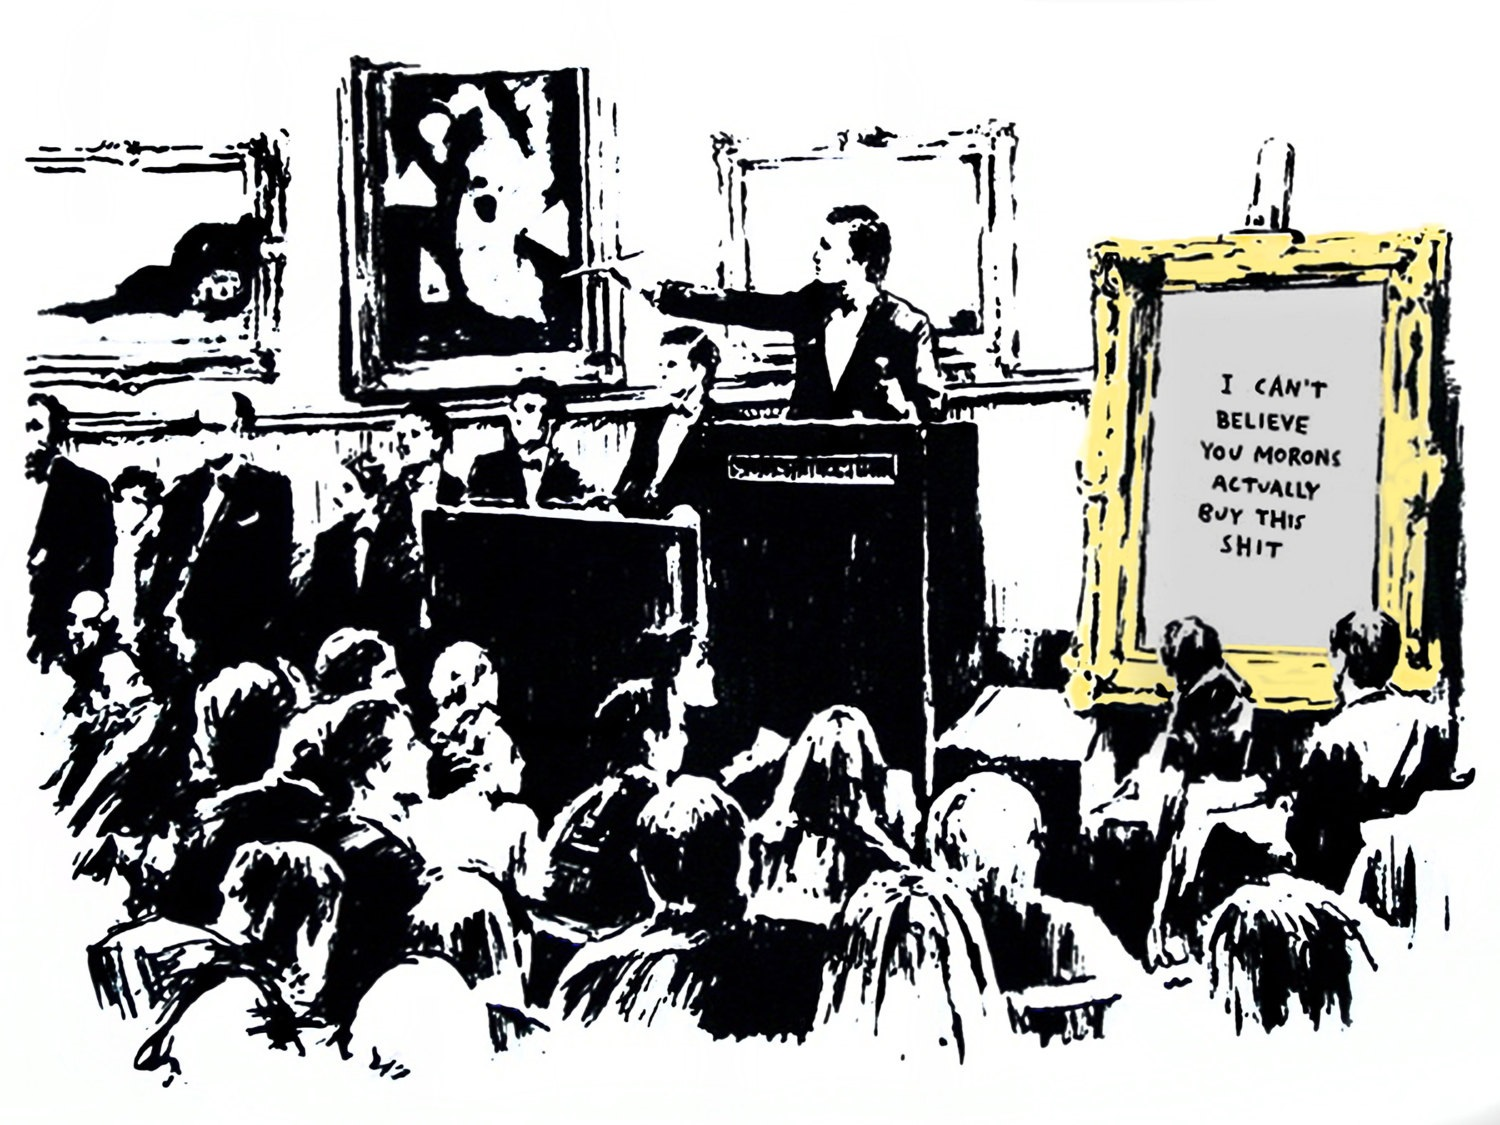 Banksy's painting showing why art shouldn't be bought as an investment